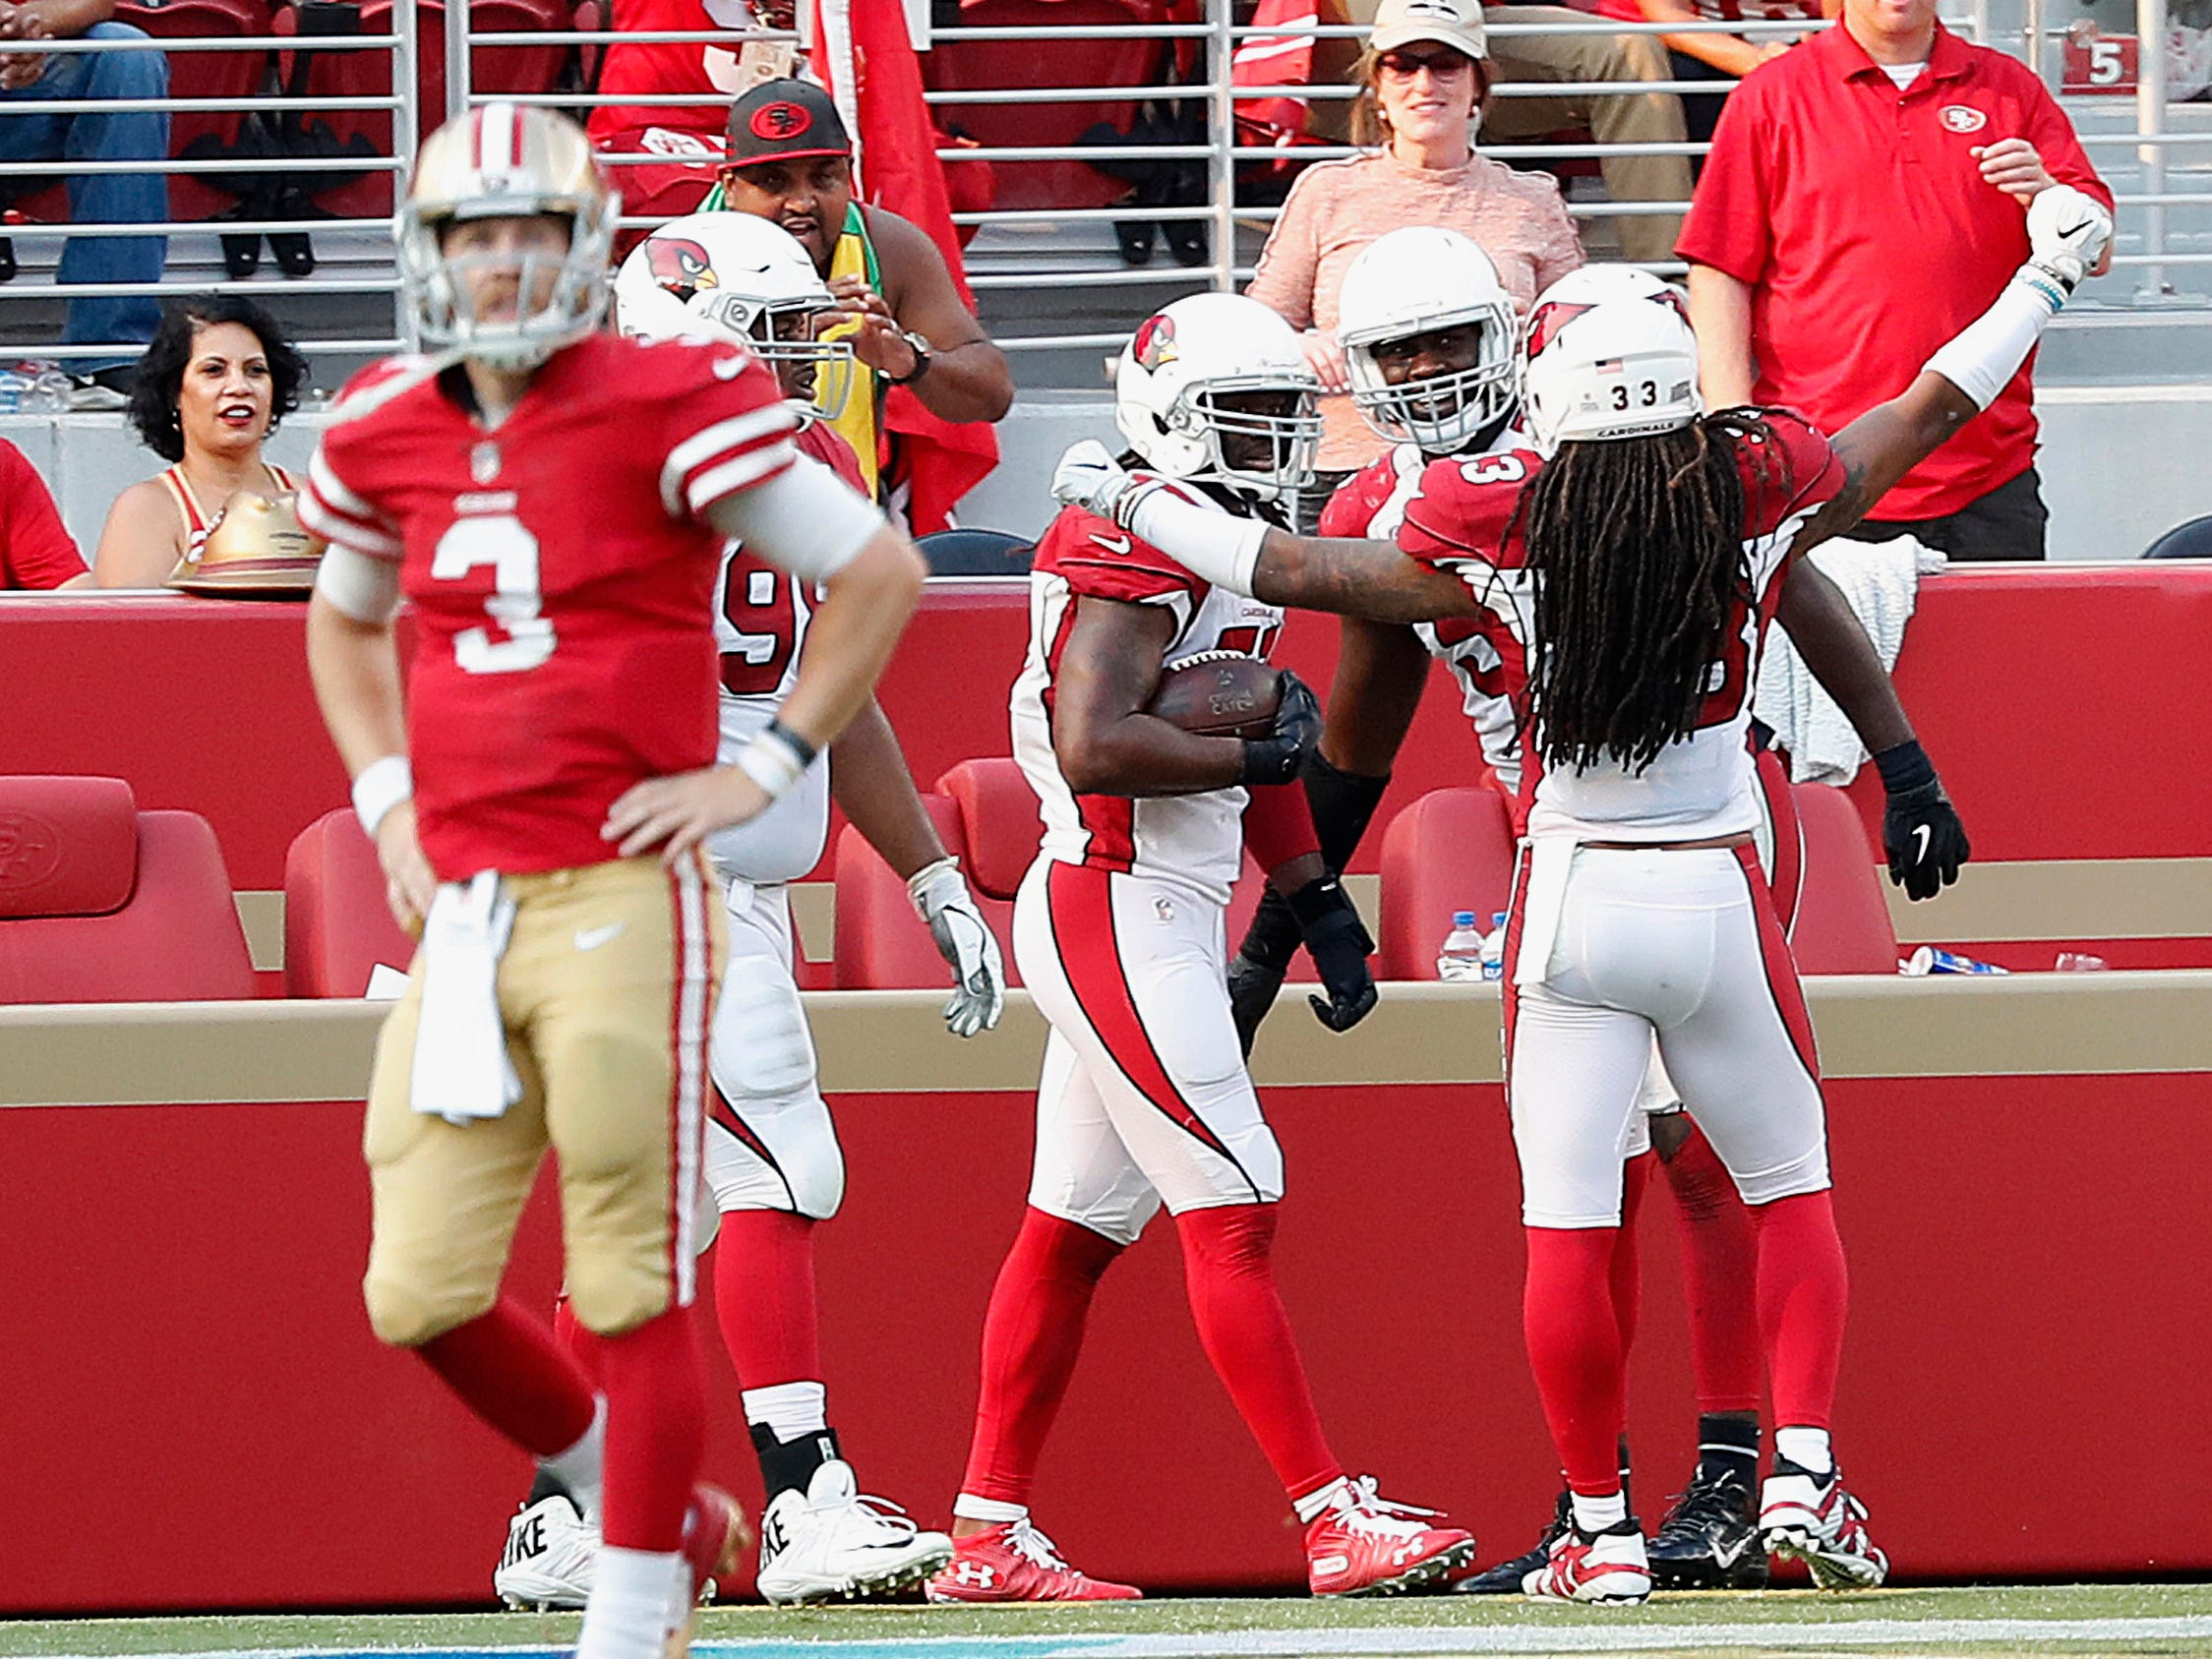 Arizona Cardinals linebacker Josh Bynes, bottom center, celebrates with teammates after returning a fumble by San Francisco 49ers quarterback C.J. Beathard (3) for a touchdown during the second half of an NFL football game in Santa Clara, Calif., Sunday, Oct. 7, 2018.